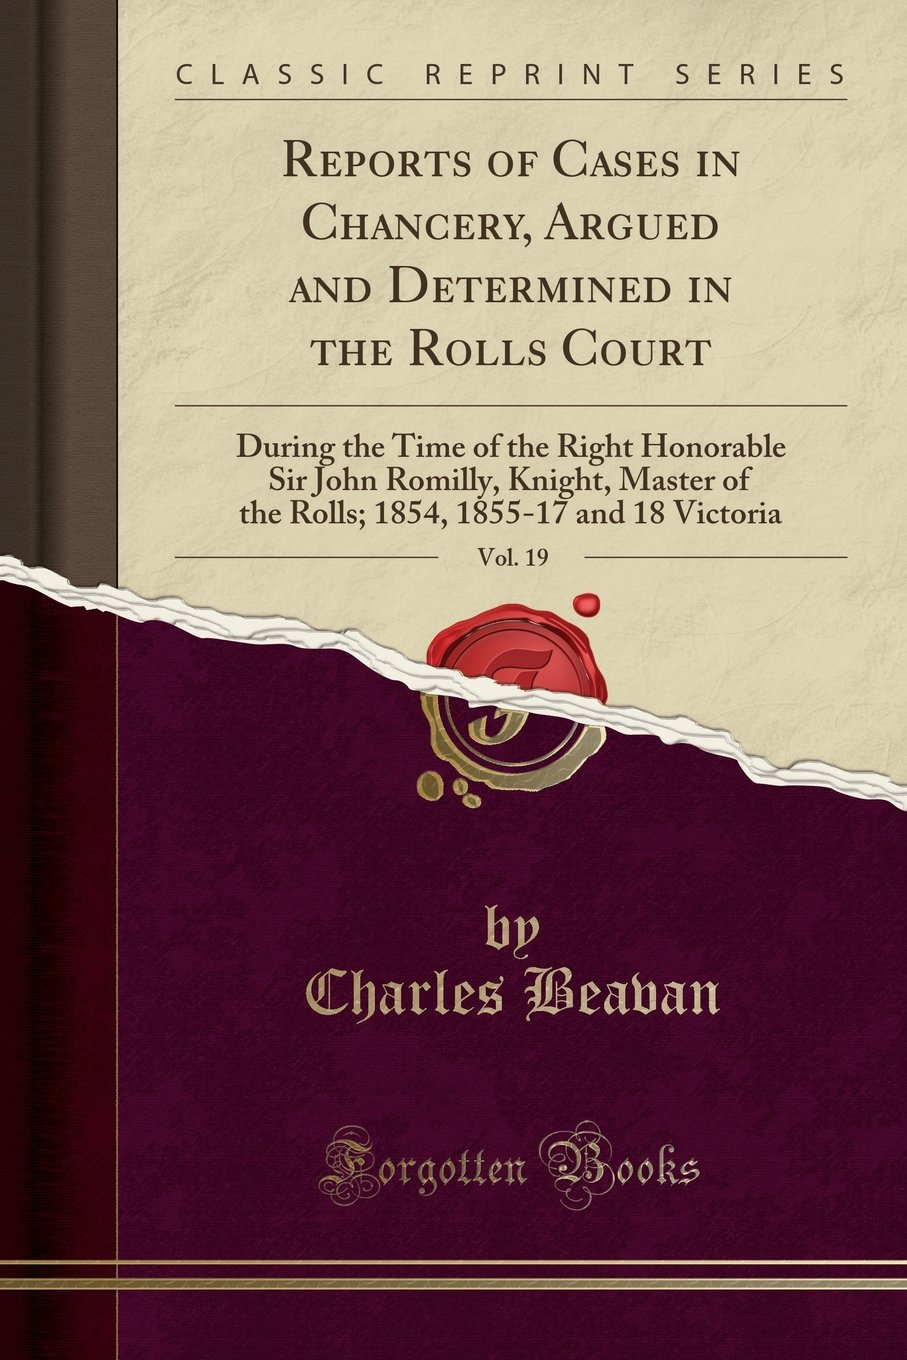 Reports of Cases in Chancery, Argued and Determined in the Rolls Court, Vol. 19: During the Time of the Right Honorable Sir John Romilly, Knight, ... 1855-17 and 18 Victoria (Classic Reprint) pdf